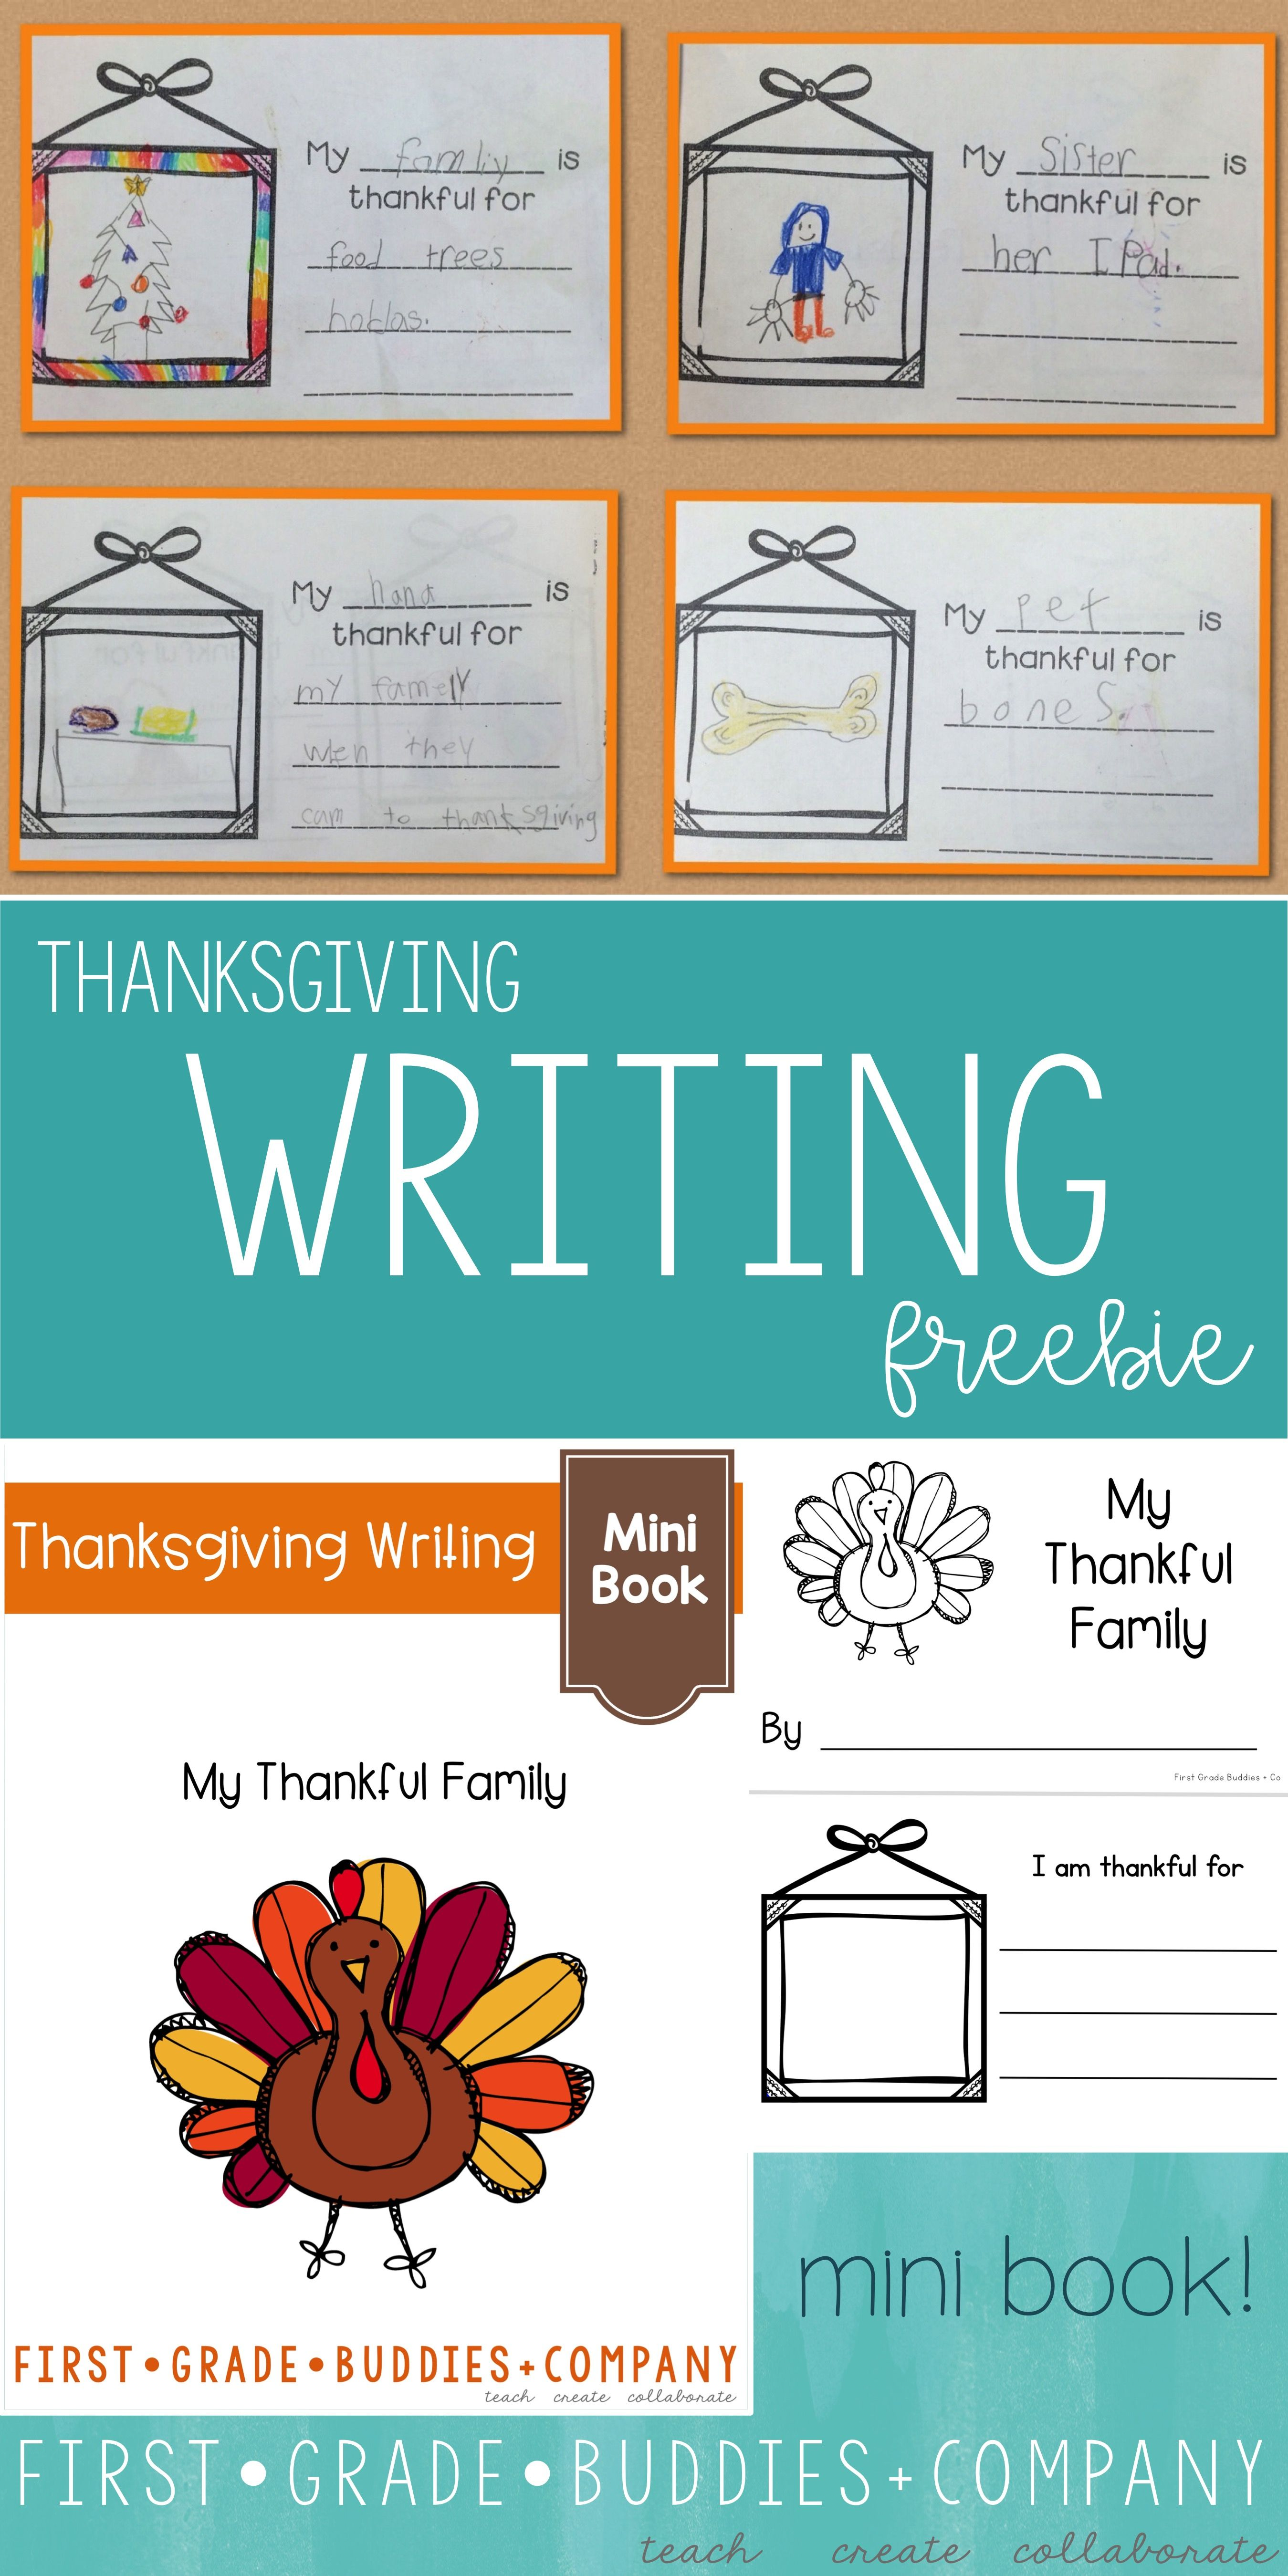 small resolution of Pin on First Grade Buddies Resources On TpT